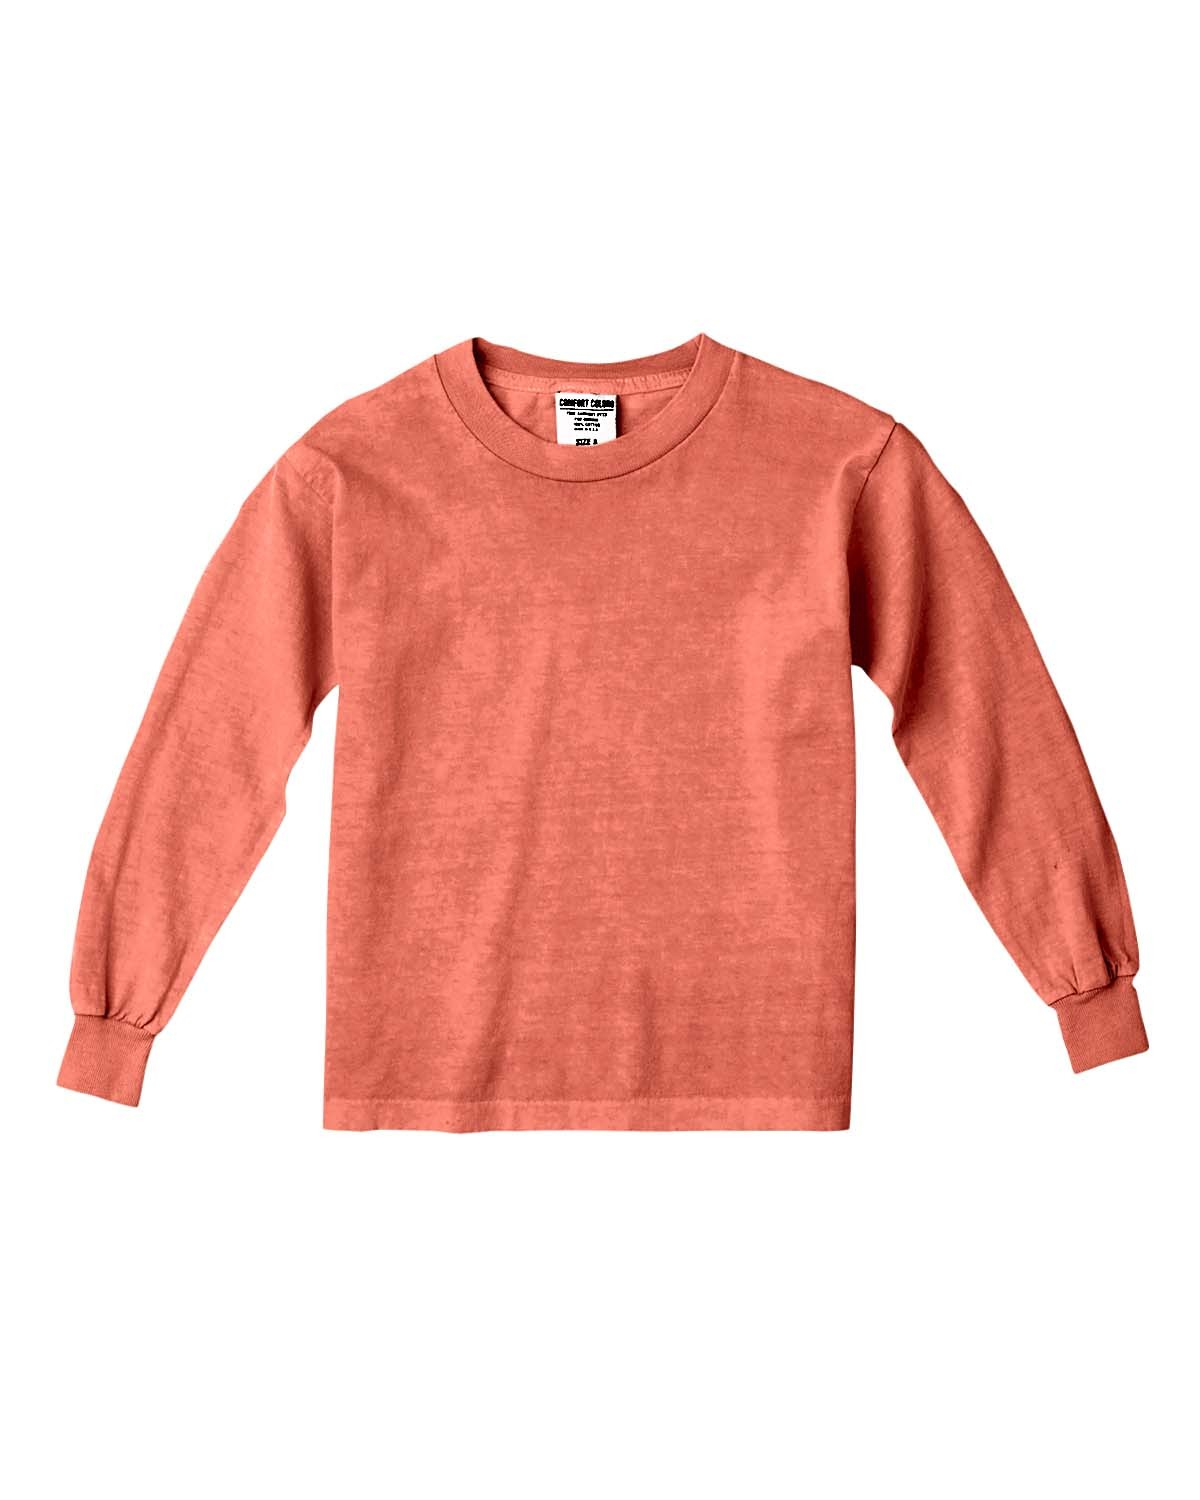 C3483 Comfort Colors Drop Ship BRIGHT SALMON